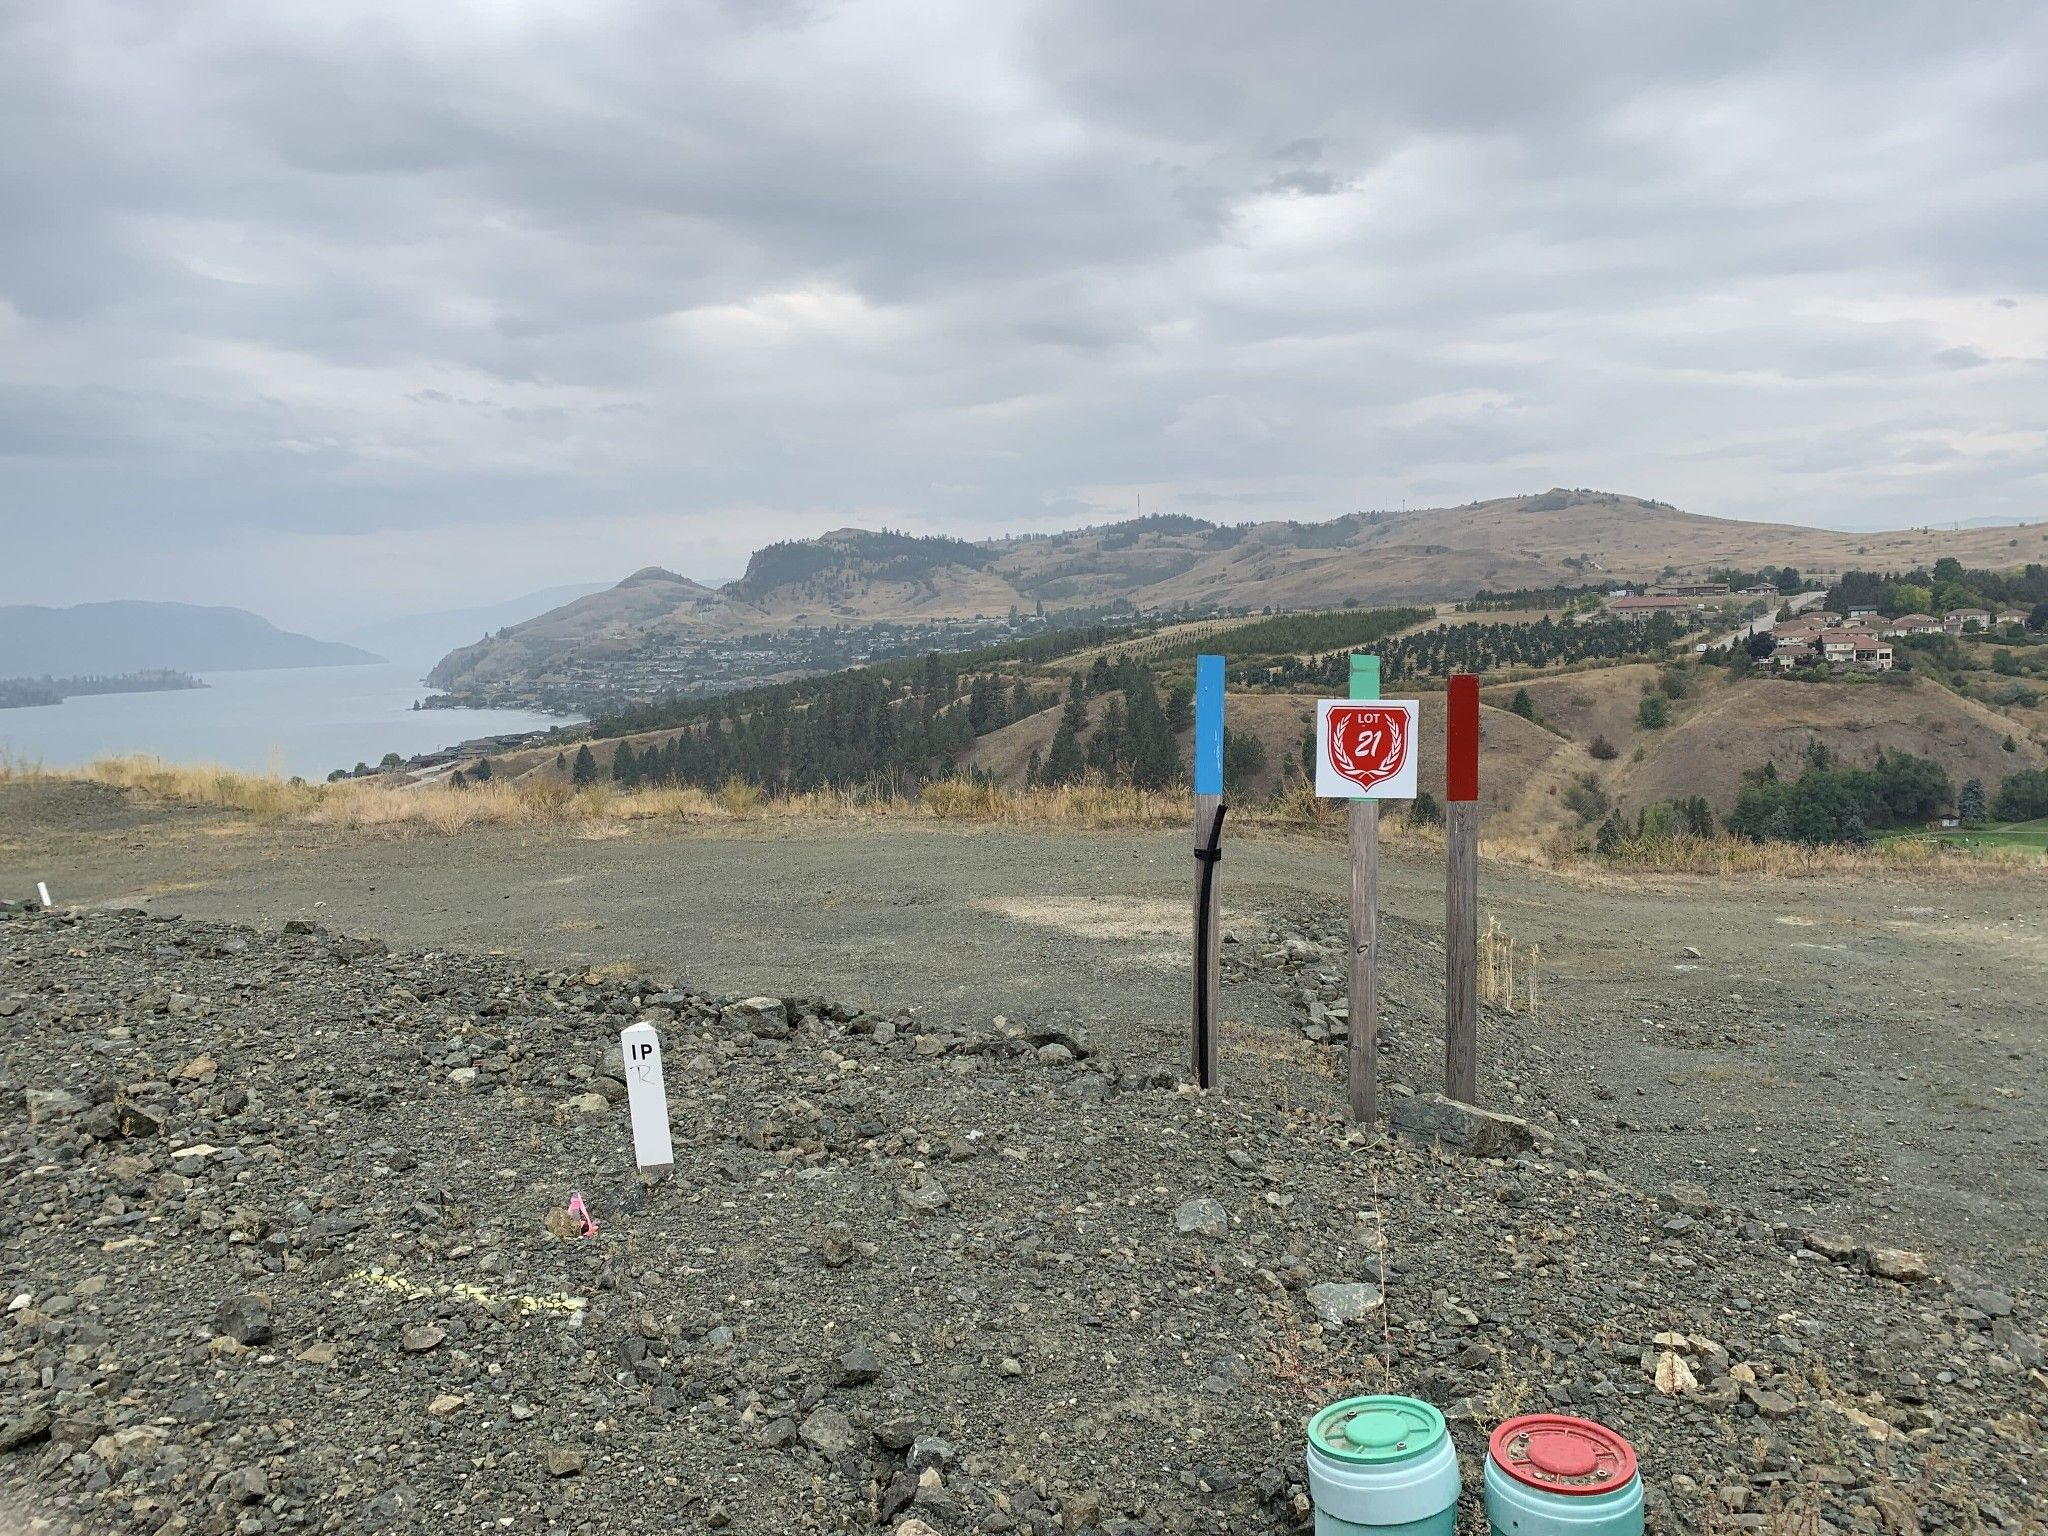 Main Photo: Lot 21 908 Mt Griffin Road in Vernon: Middlton Mtn Vacant Land for sale (Noth Okanagan)  : MLS®# 1021518*9